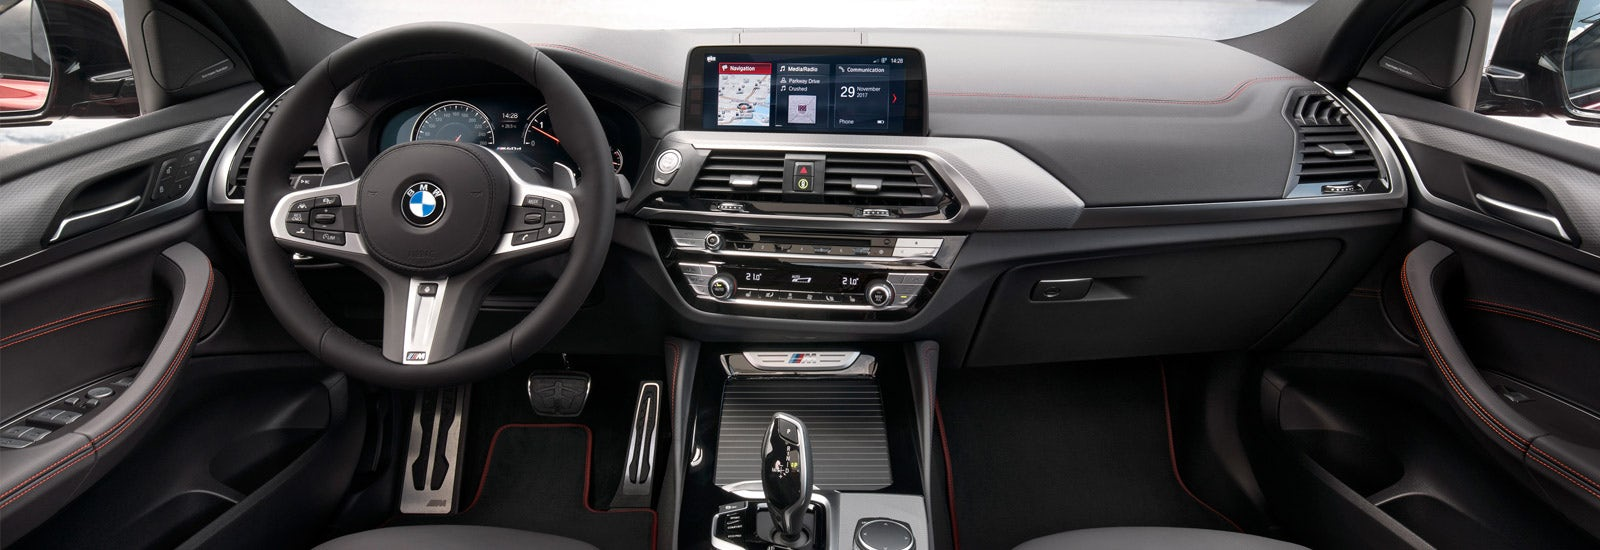 prices suv a variants is dsc reviews how much bmw specifications carbuyer